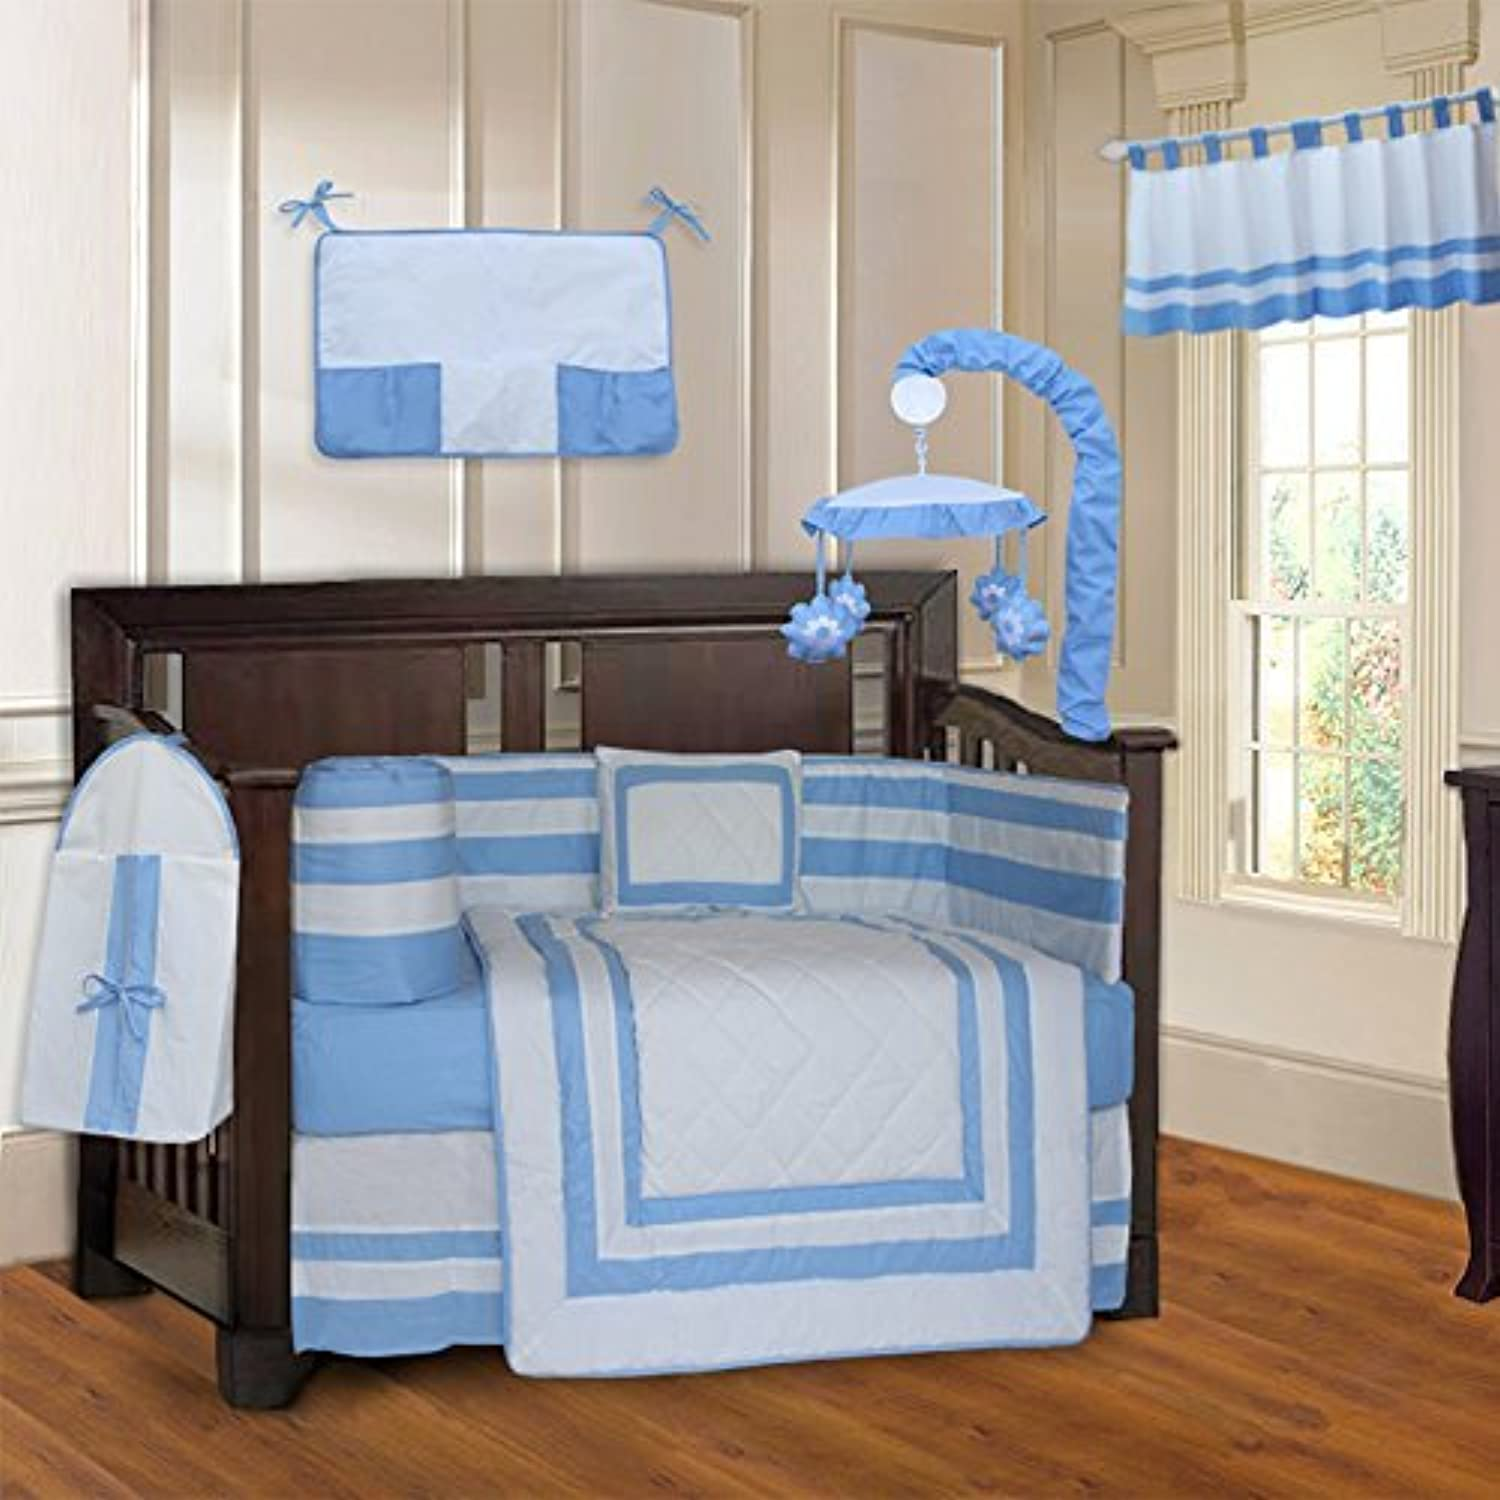 BabyFad Modern Quilted Blue 10 Piece Baby Crib Bedding Set [並行輸入品]